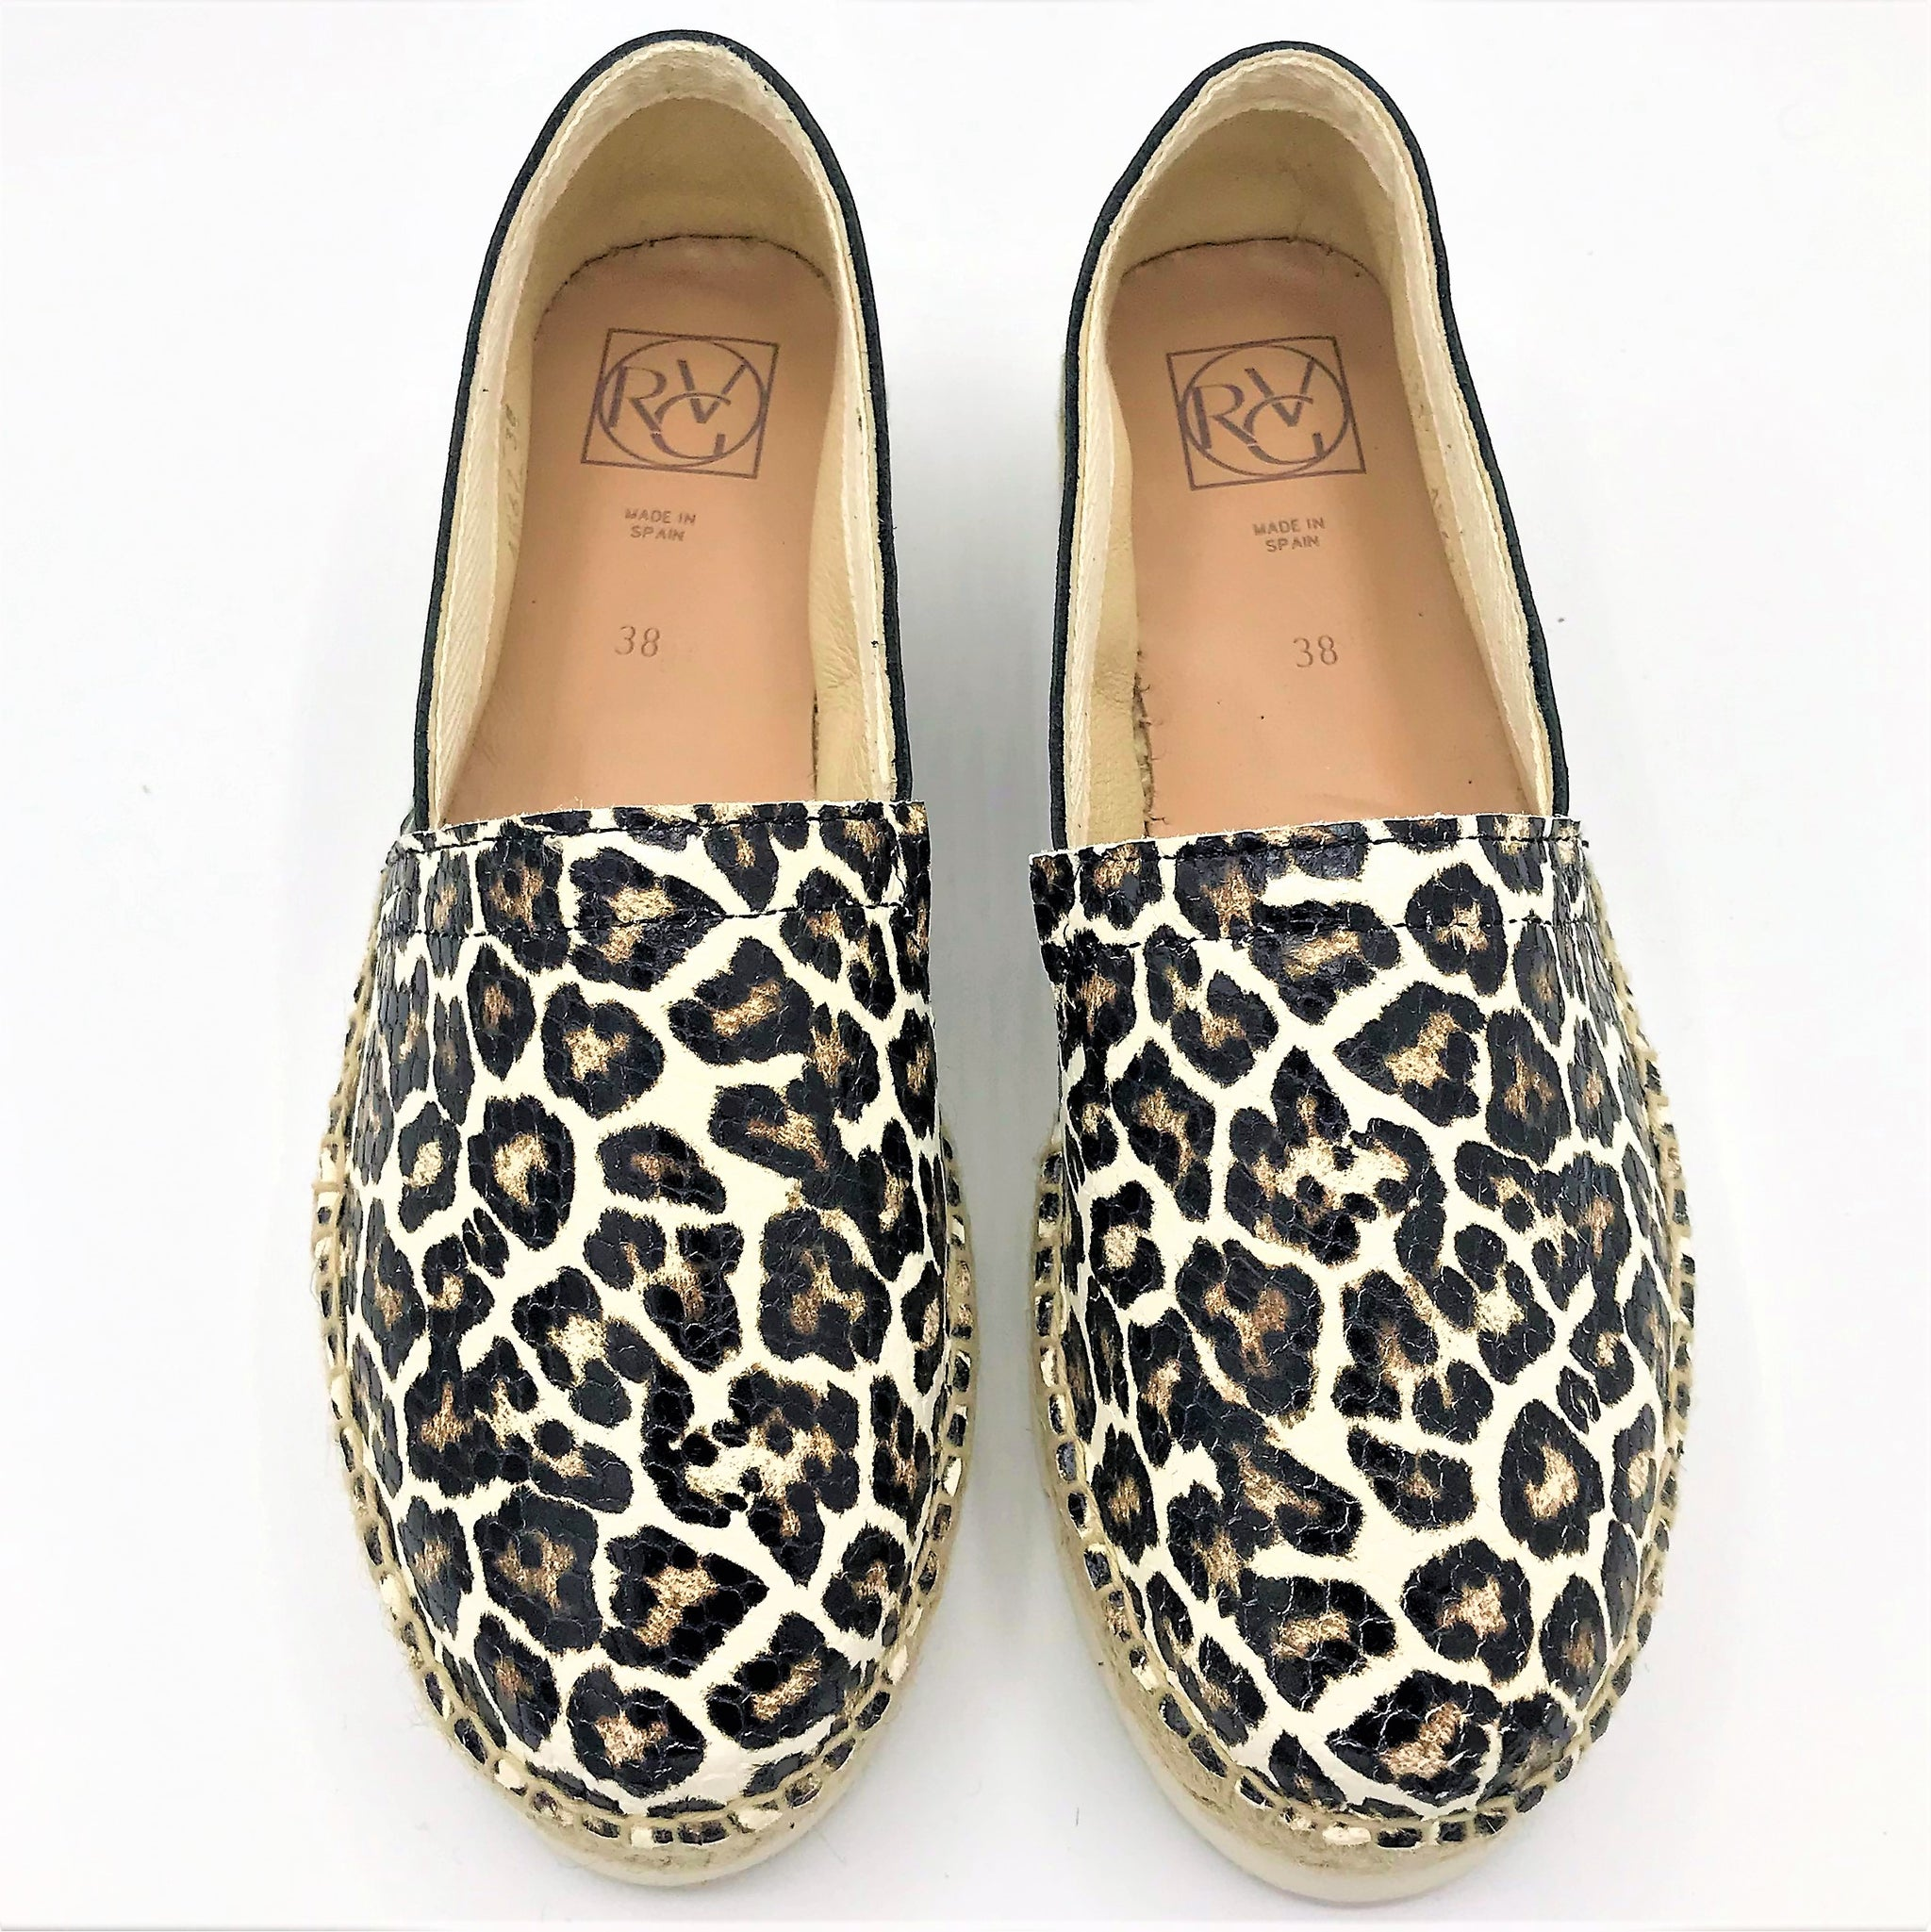 Leopard Print Leather Espadrille from RGV Styled